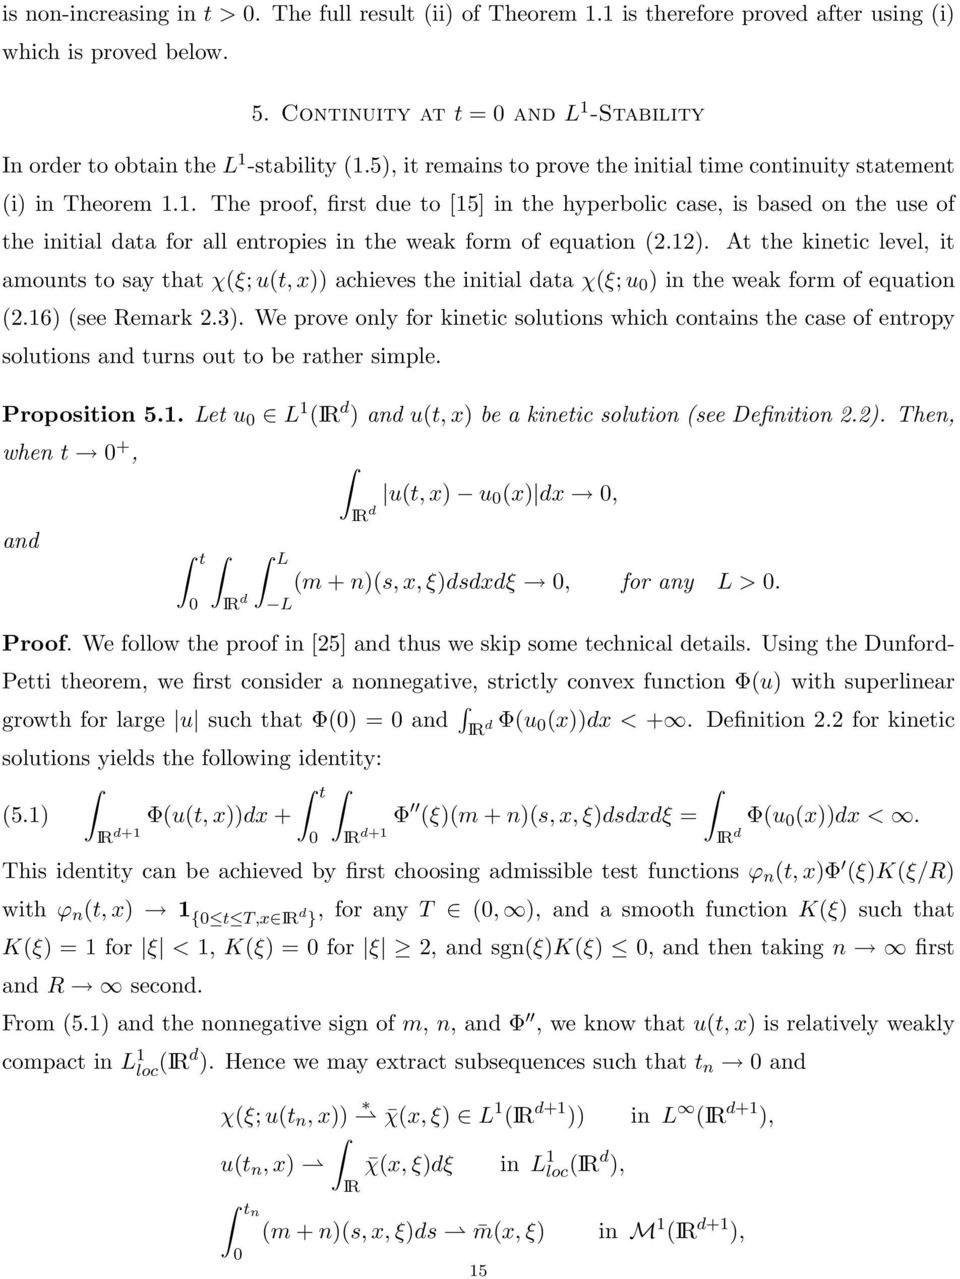 1. The proof, first due to [15] in the hyperbolic case, is based on the use of the initial data for all entropies in the weak form of equation 2.12.